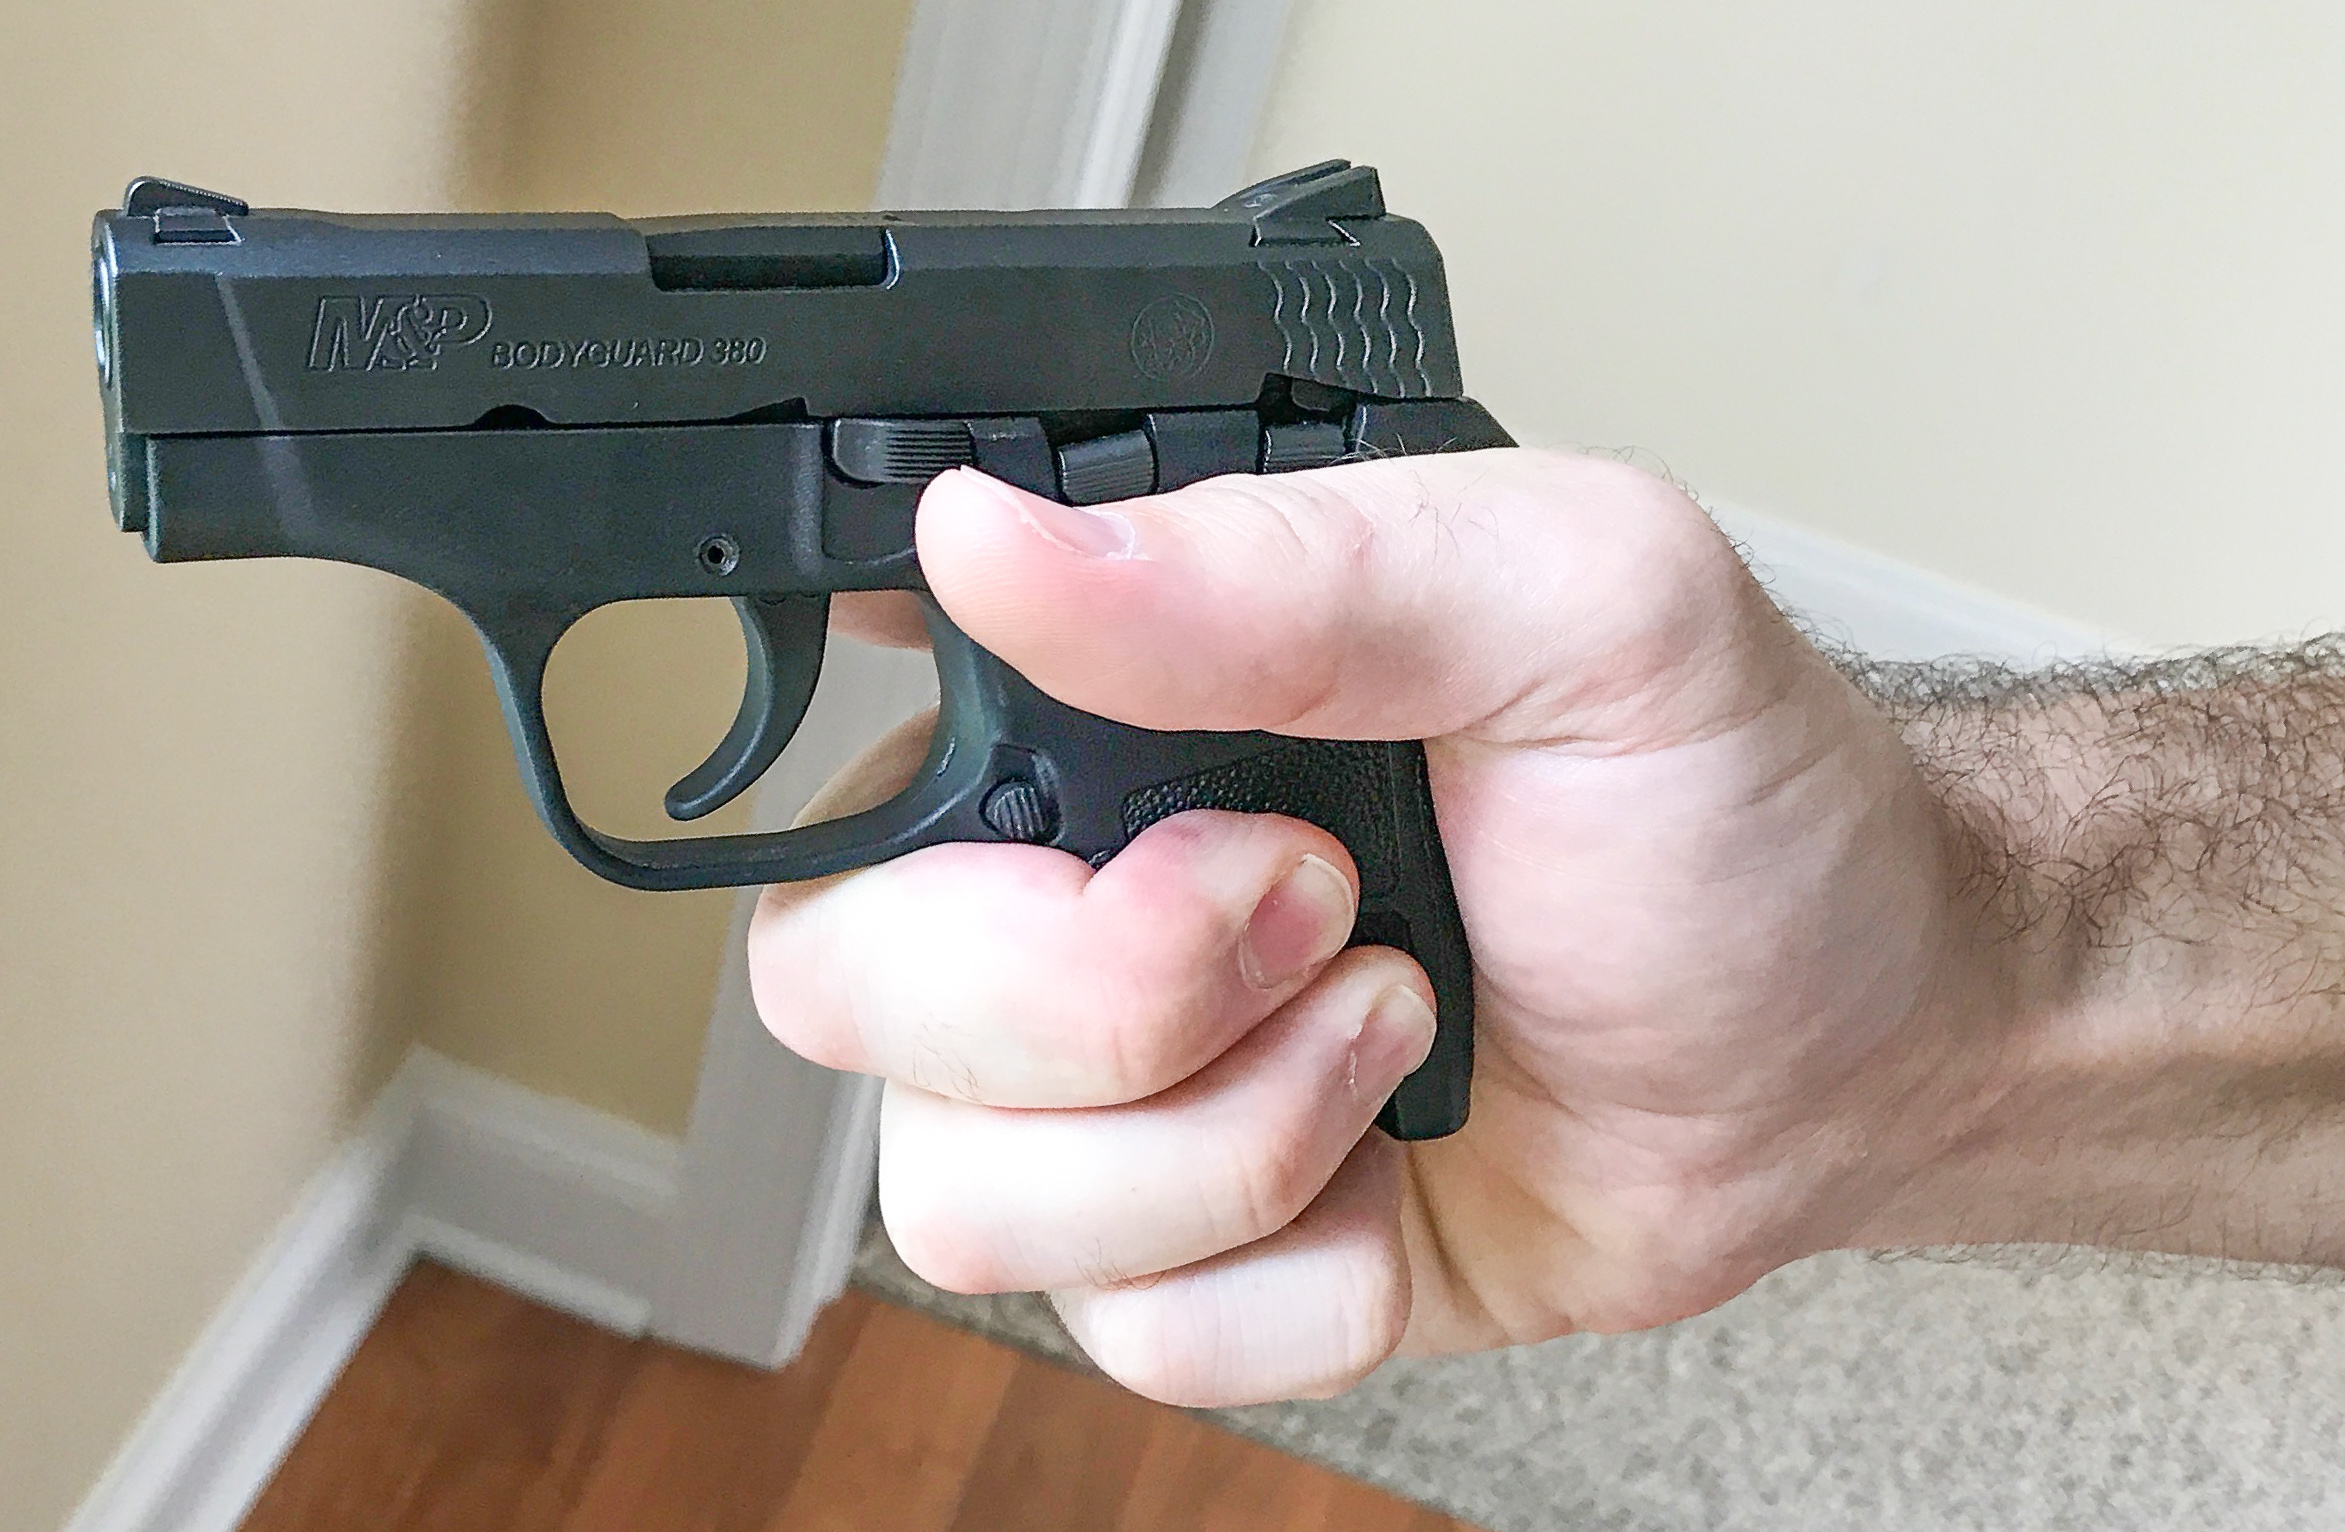 Support side view of one-handed grip on small pistol by large right-handed shooter